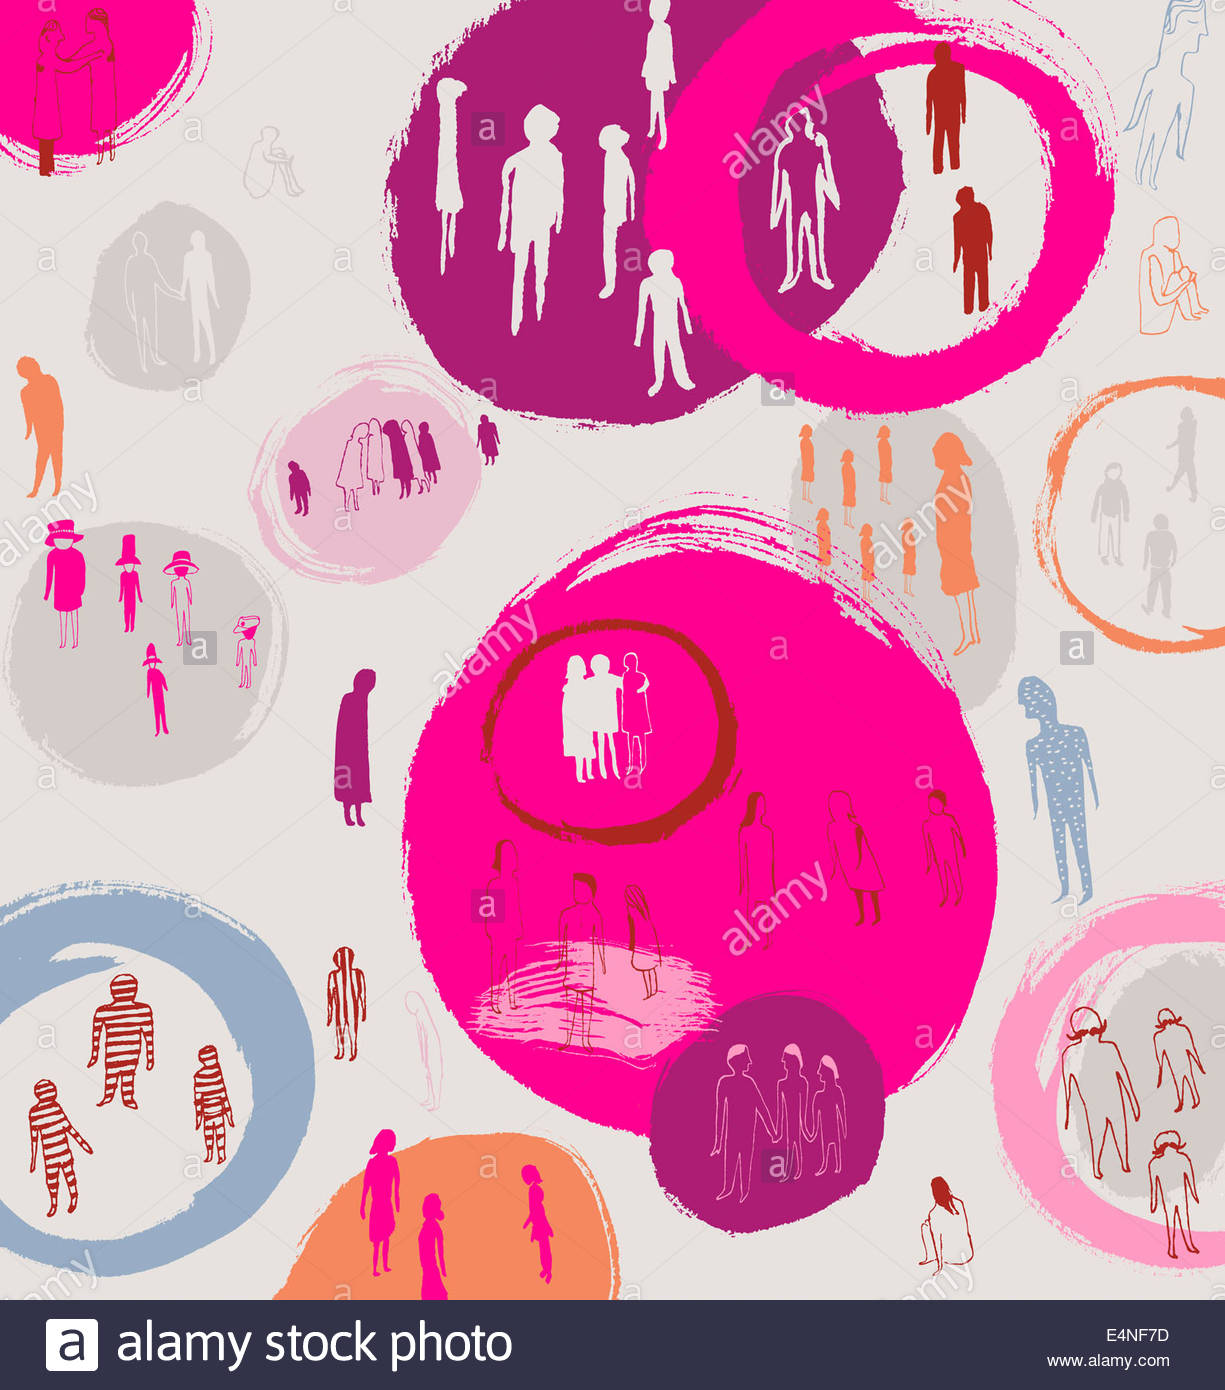 People segregated into groups by circles or excluded outside - Stock Image